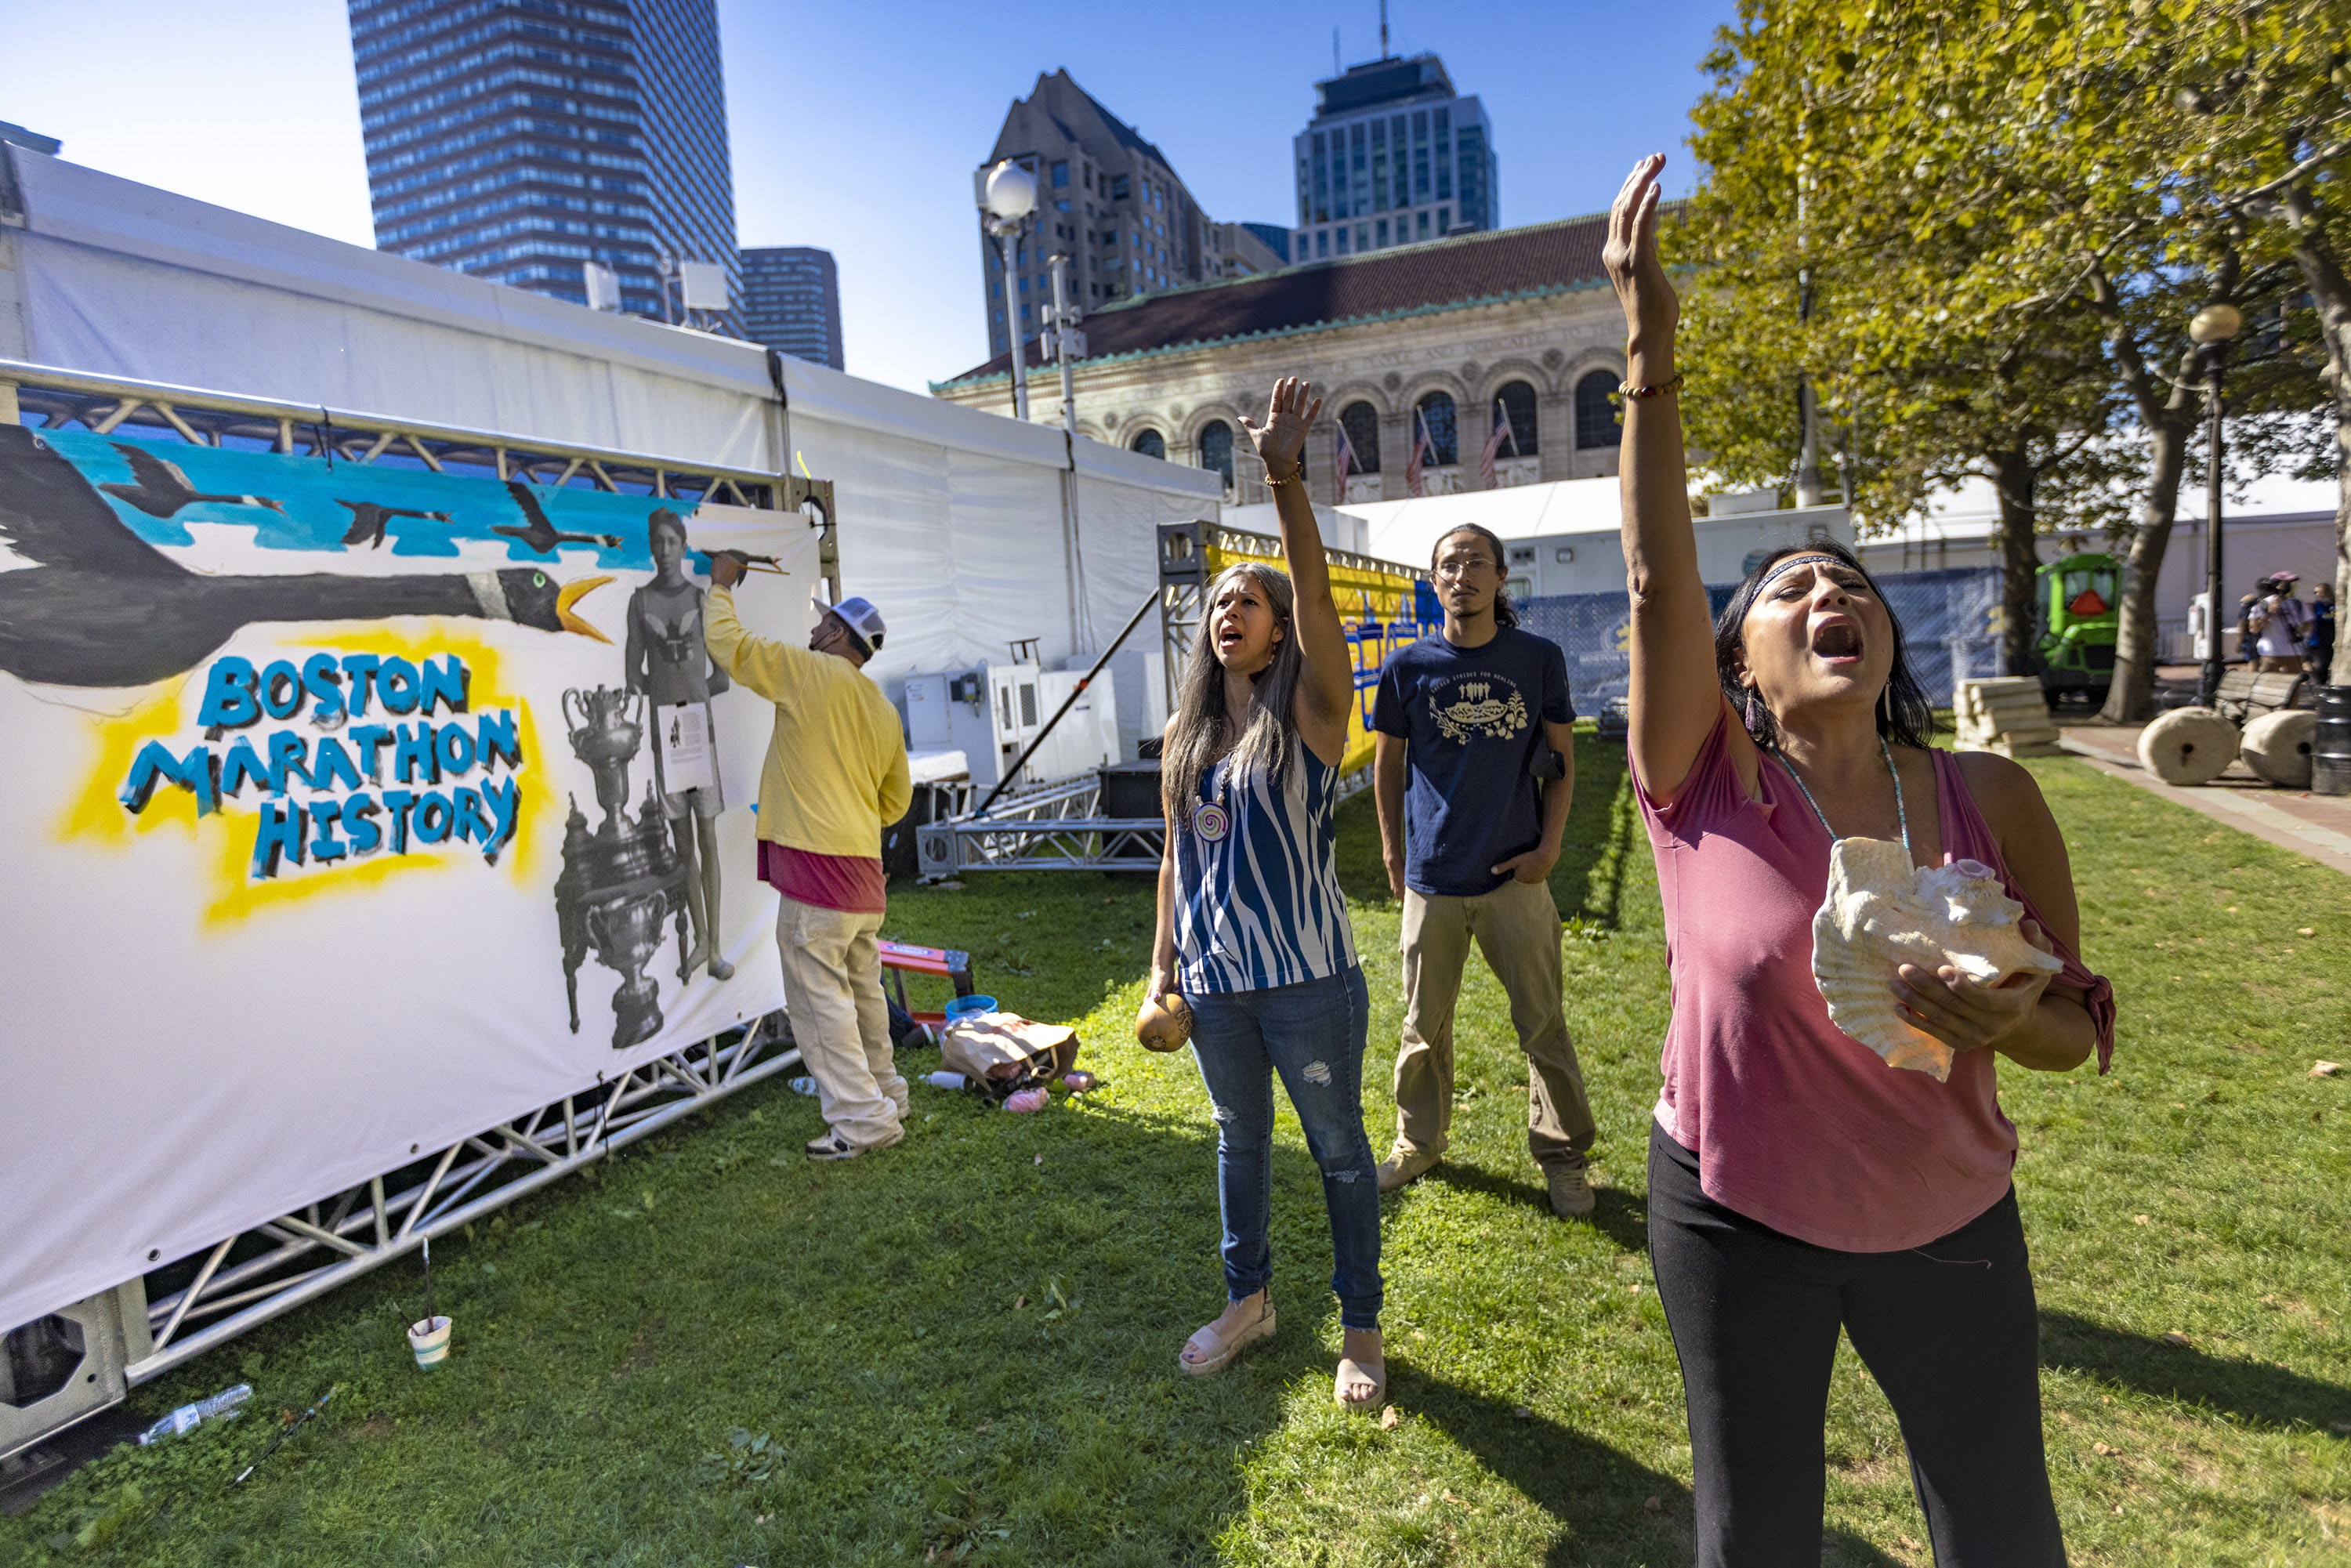 Chali'Naru Dones, right, and Darlene Flores, co-founders of the Indigenous Peoples' Day Committee in Newton, perform a healing song as artist Robert Peters paints a mural illustrating Indigenous history in the Boston Marathon near the finish line in Copley Square. (Jesse Costa/WBUR)